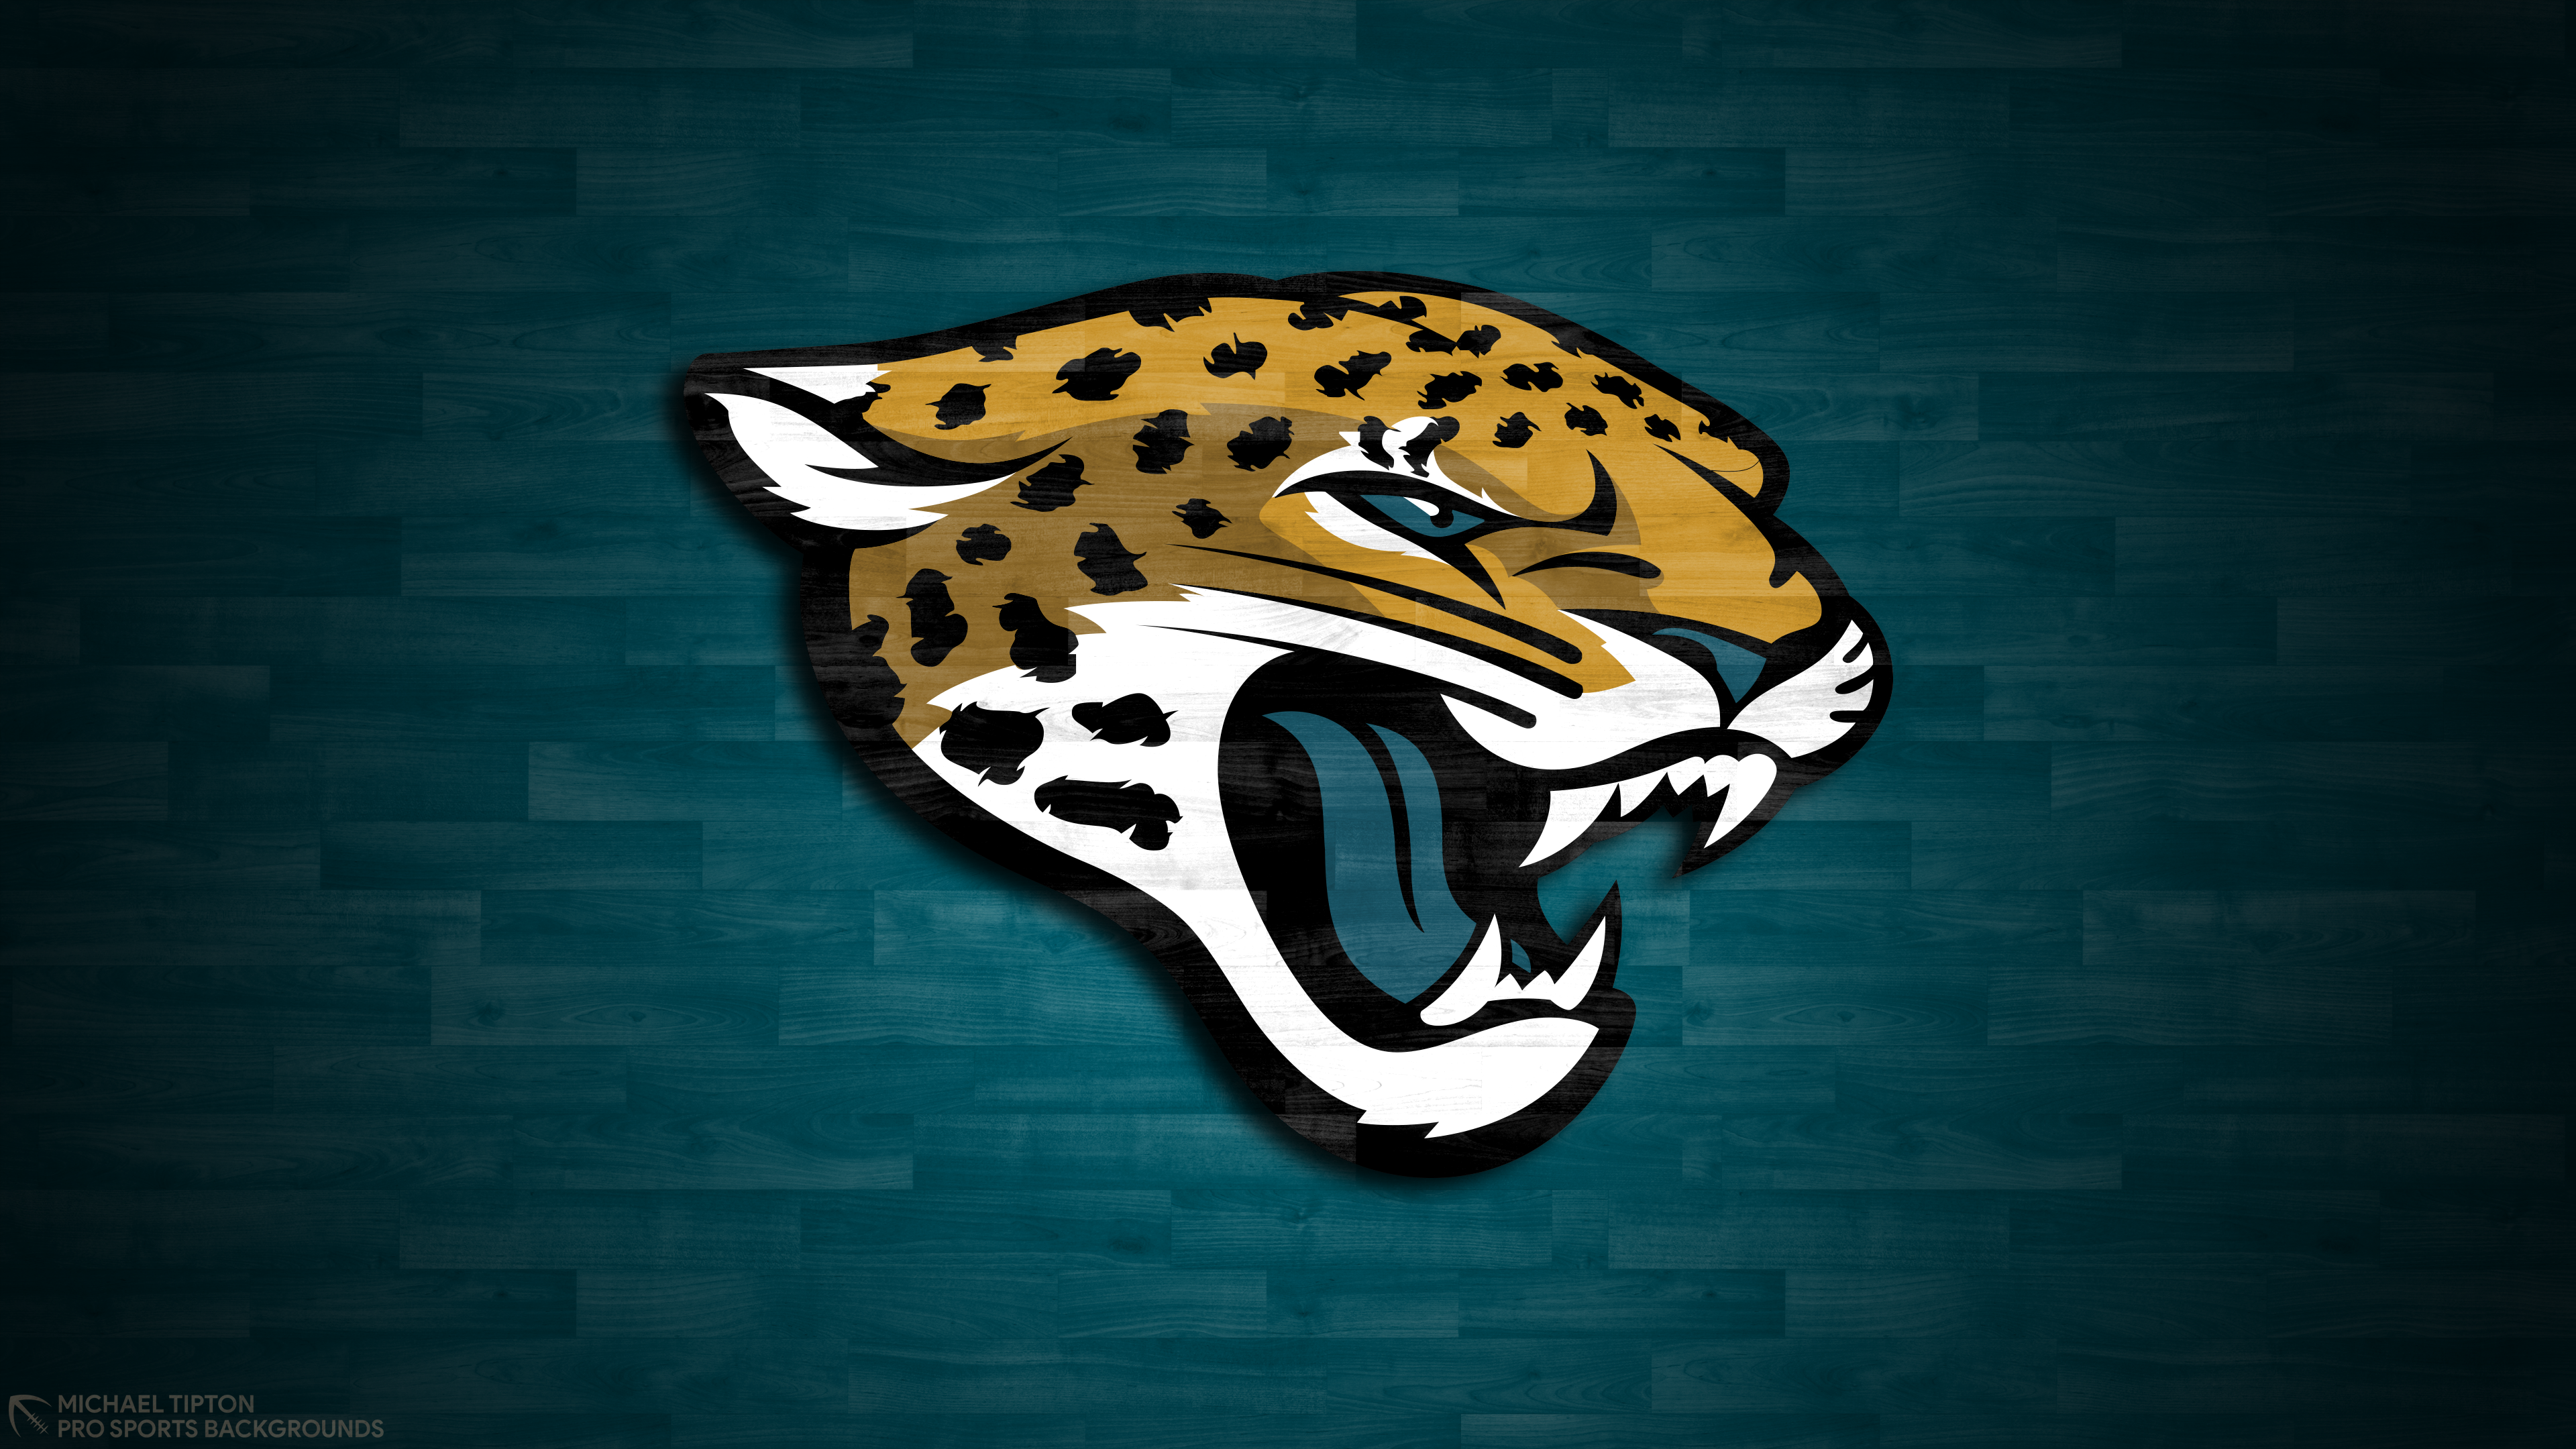 2019 Jacksonville Jaguars Wallpapers Pro Sports Backgrounds 3840x2160